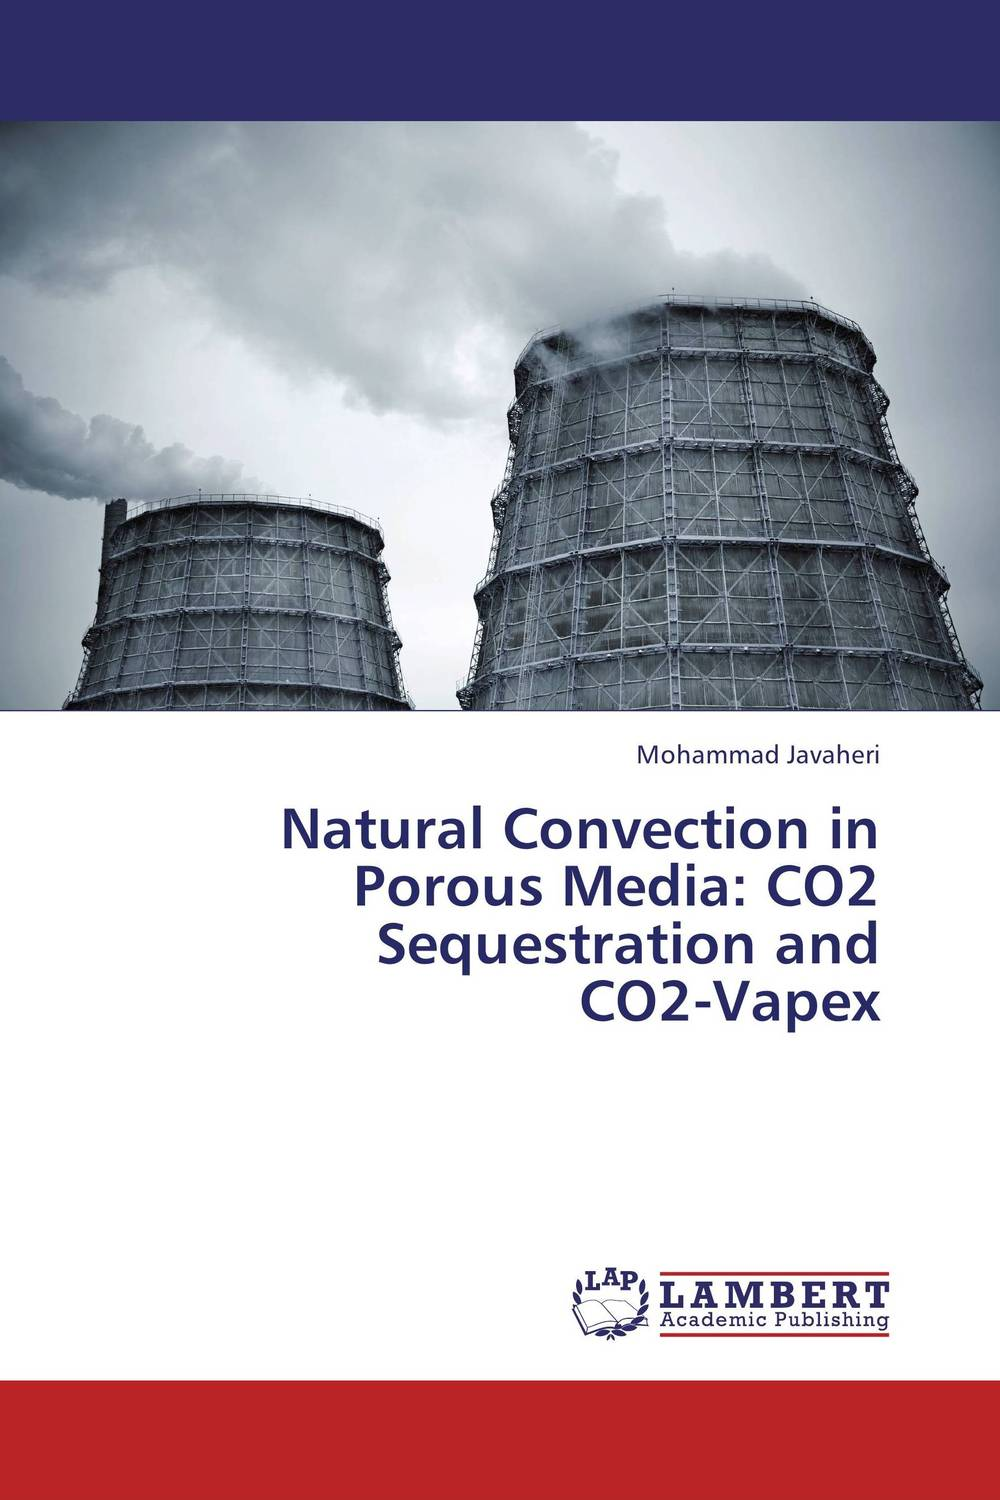 Natural Convection in Porous Media: CO2 Sequestration and CO2-Vapex an epidemiological study of natural deaths in limpopo